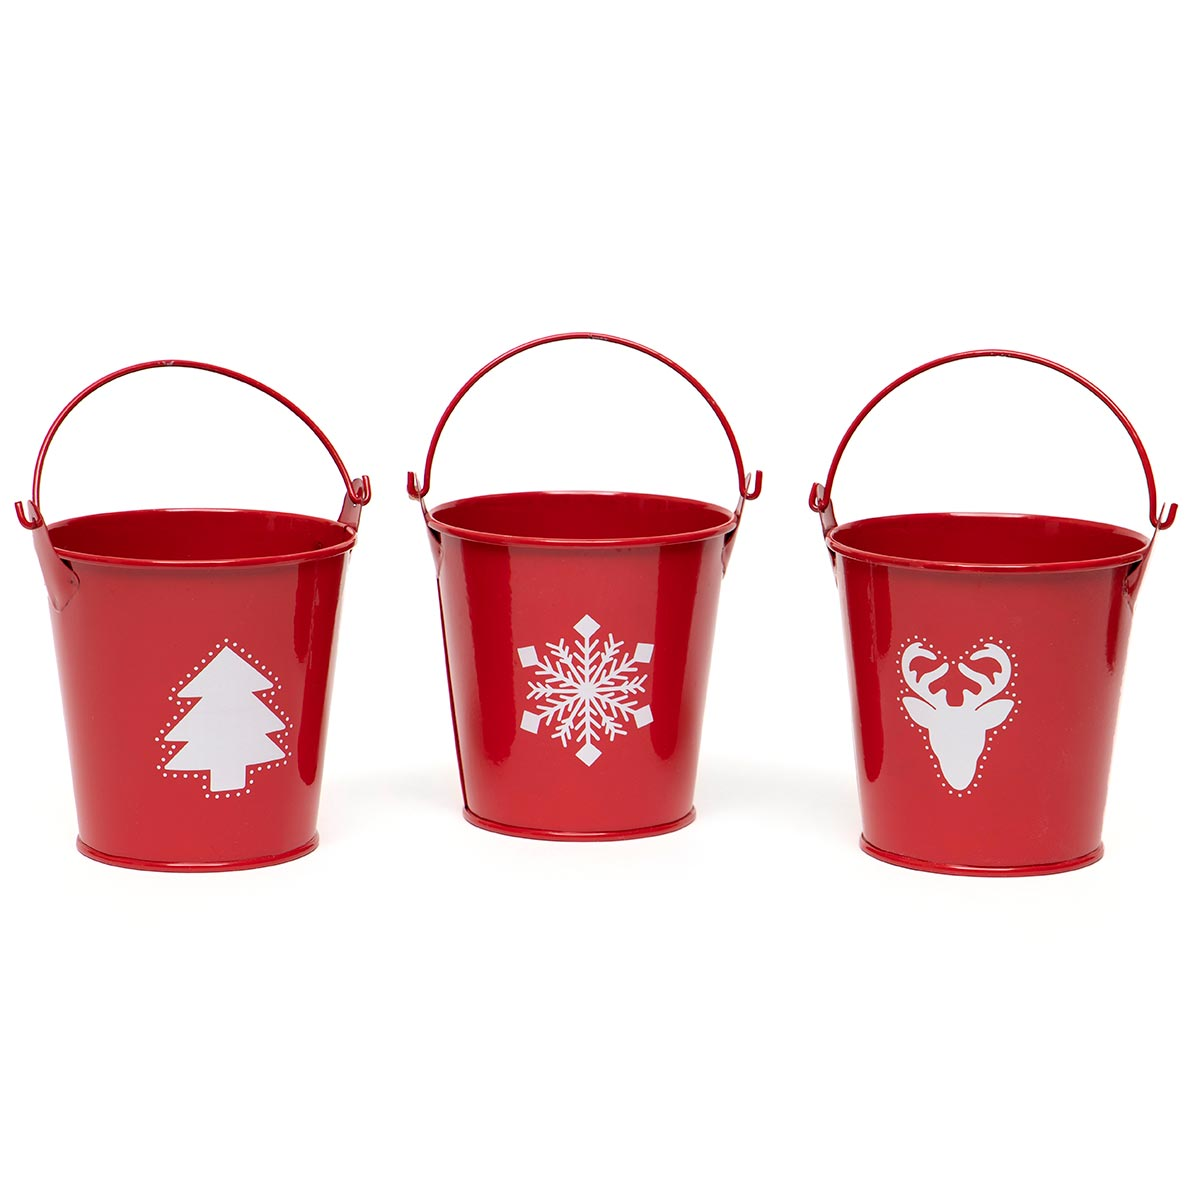 MINI METAL PAIL RED/WHITE WITH HANDLE TREE/DEER/SNOWFLAKE